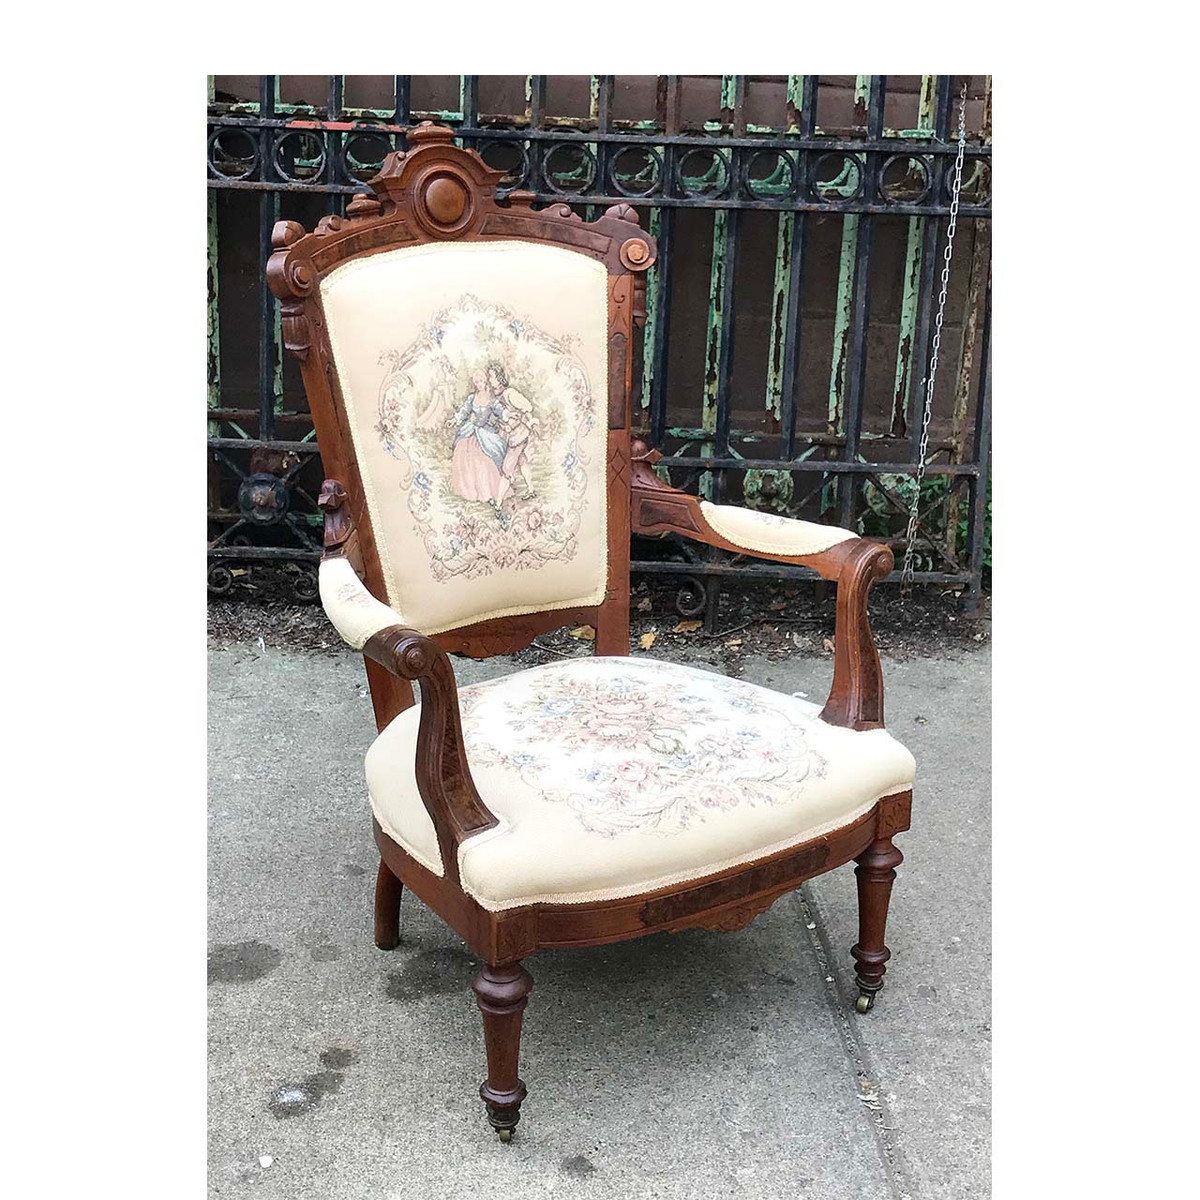 F17081 - Antique Renaissance Revival Needlepoint and Walnut Arm Chair